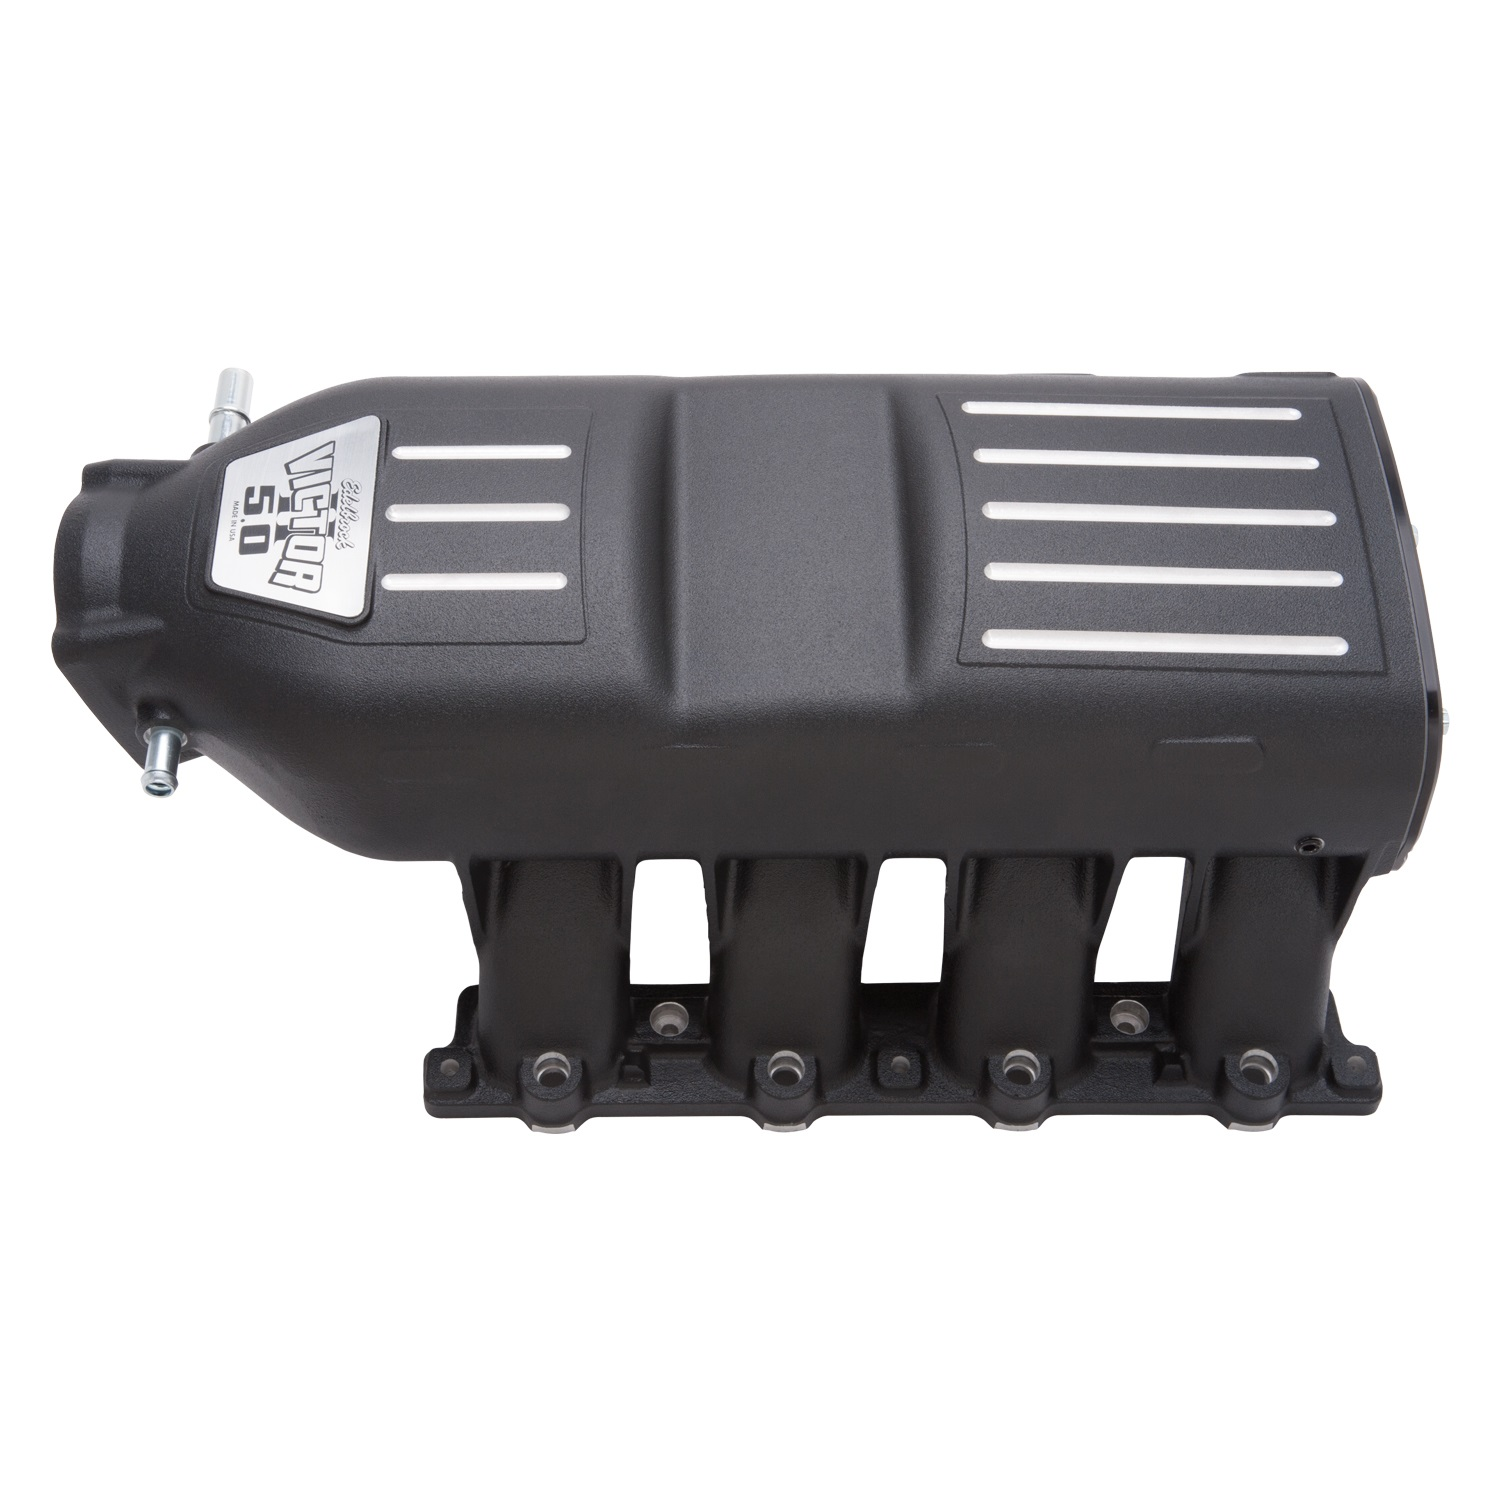 Edelbrock 7180 Victor II Series Intake Manifold 1500-7500 rpm Crossover Style Runners Black Finish